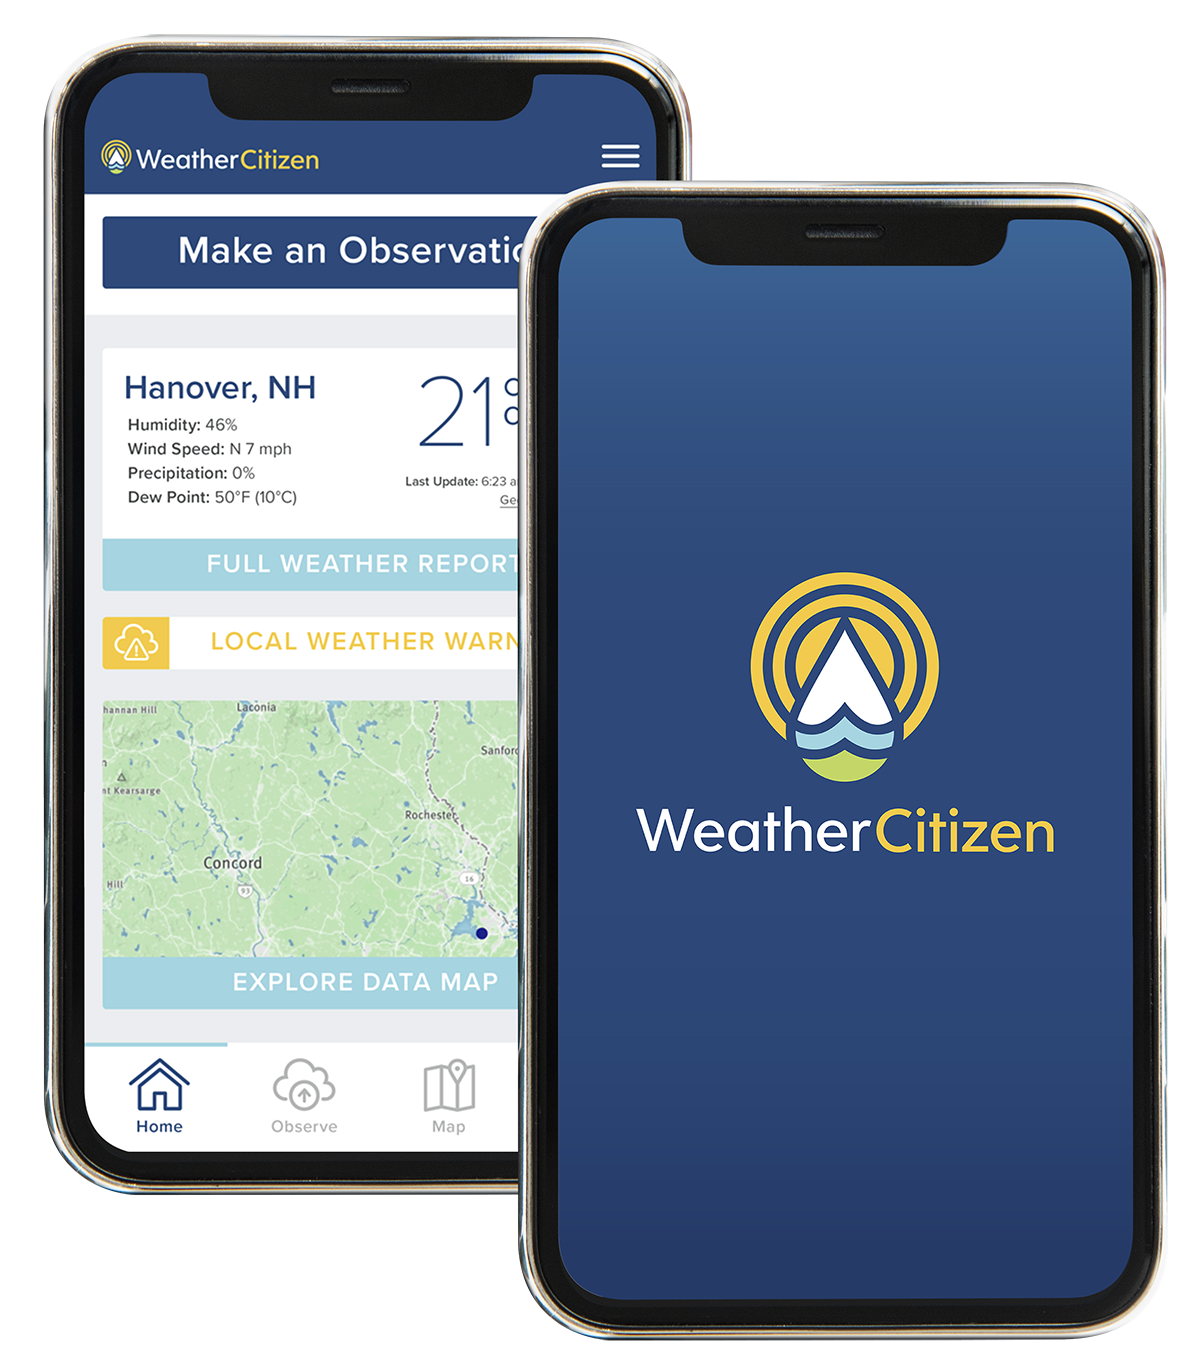 Download the WeatherCitizen app